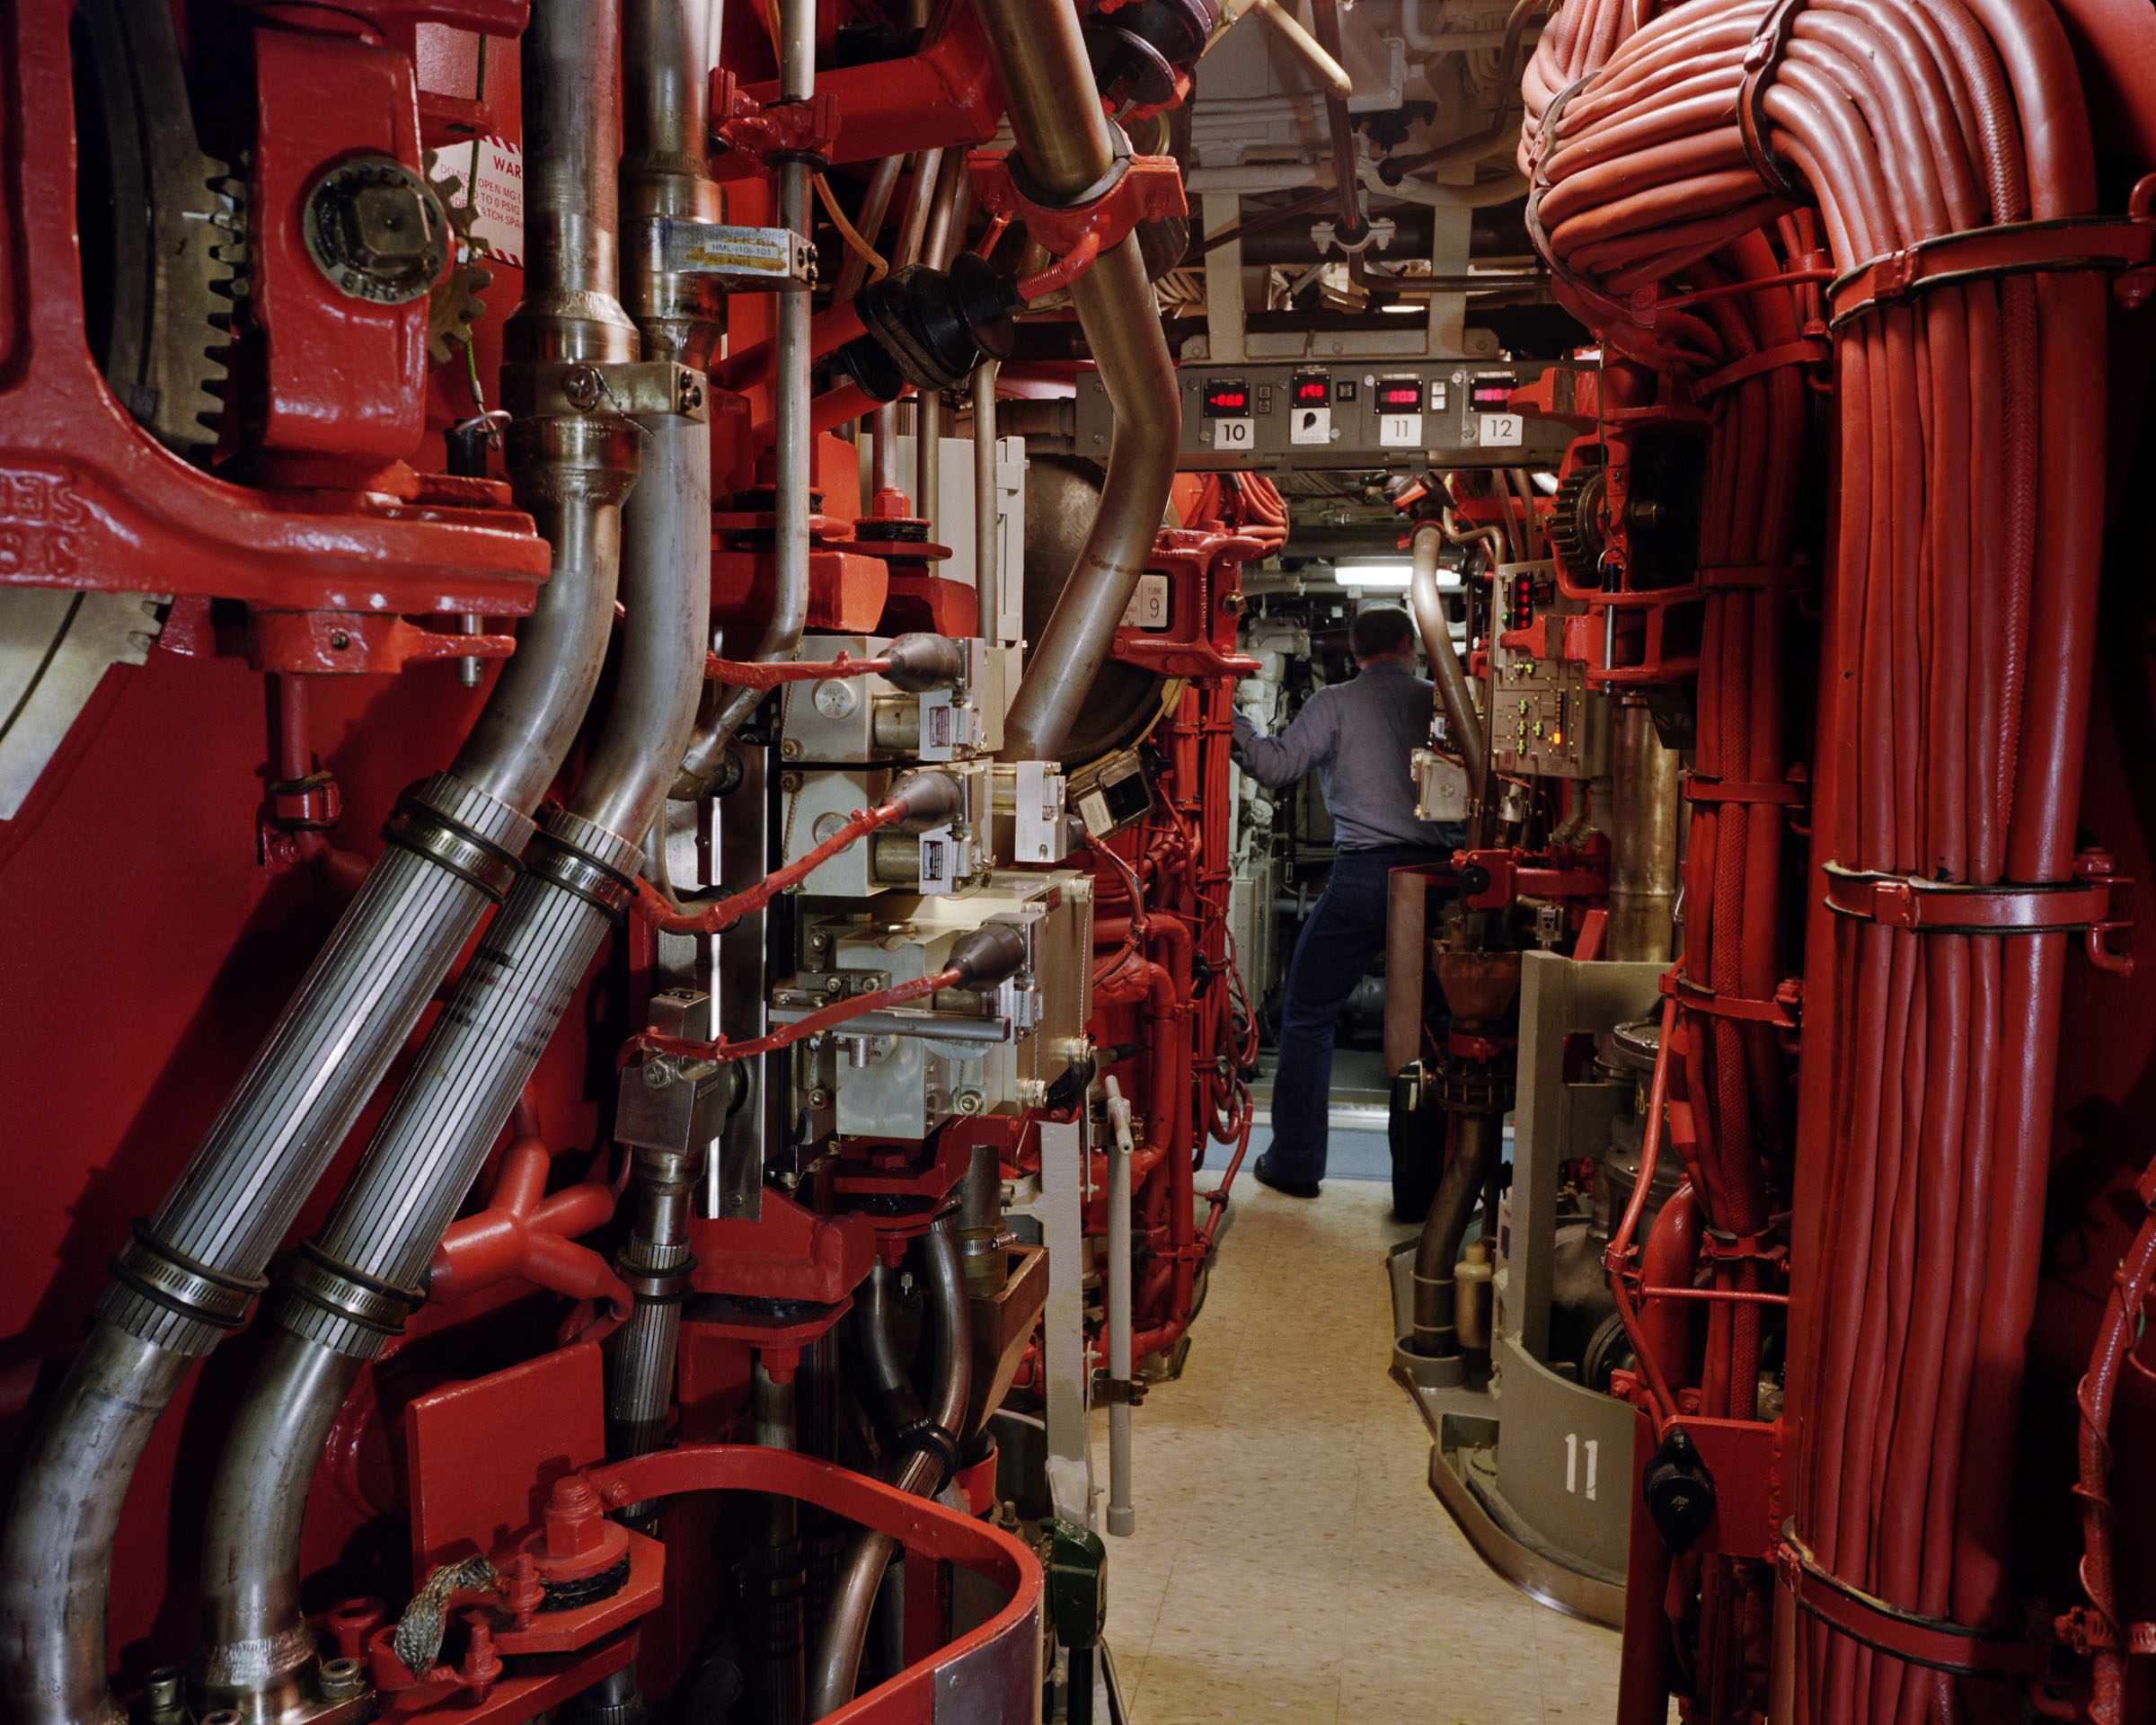 Trident submarine missile tubes, second level, USS Alaska, Naval Submarine Base Bangor, Washington, 1992.